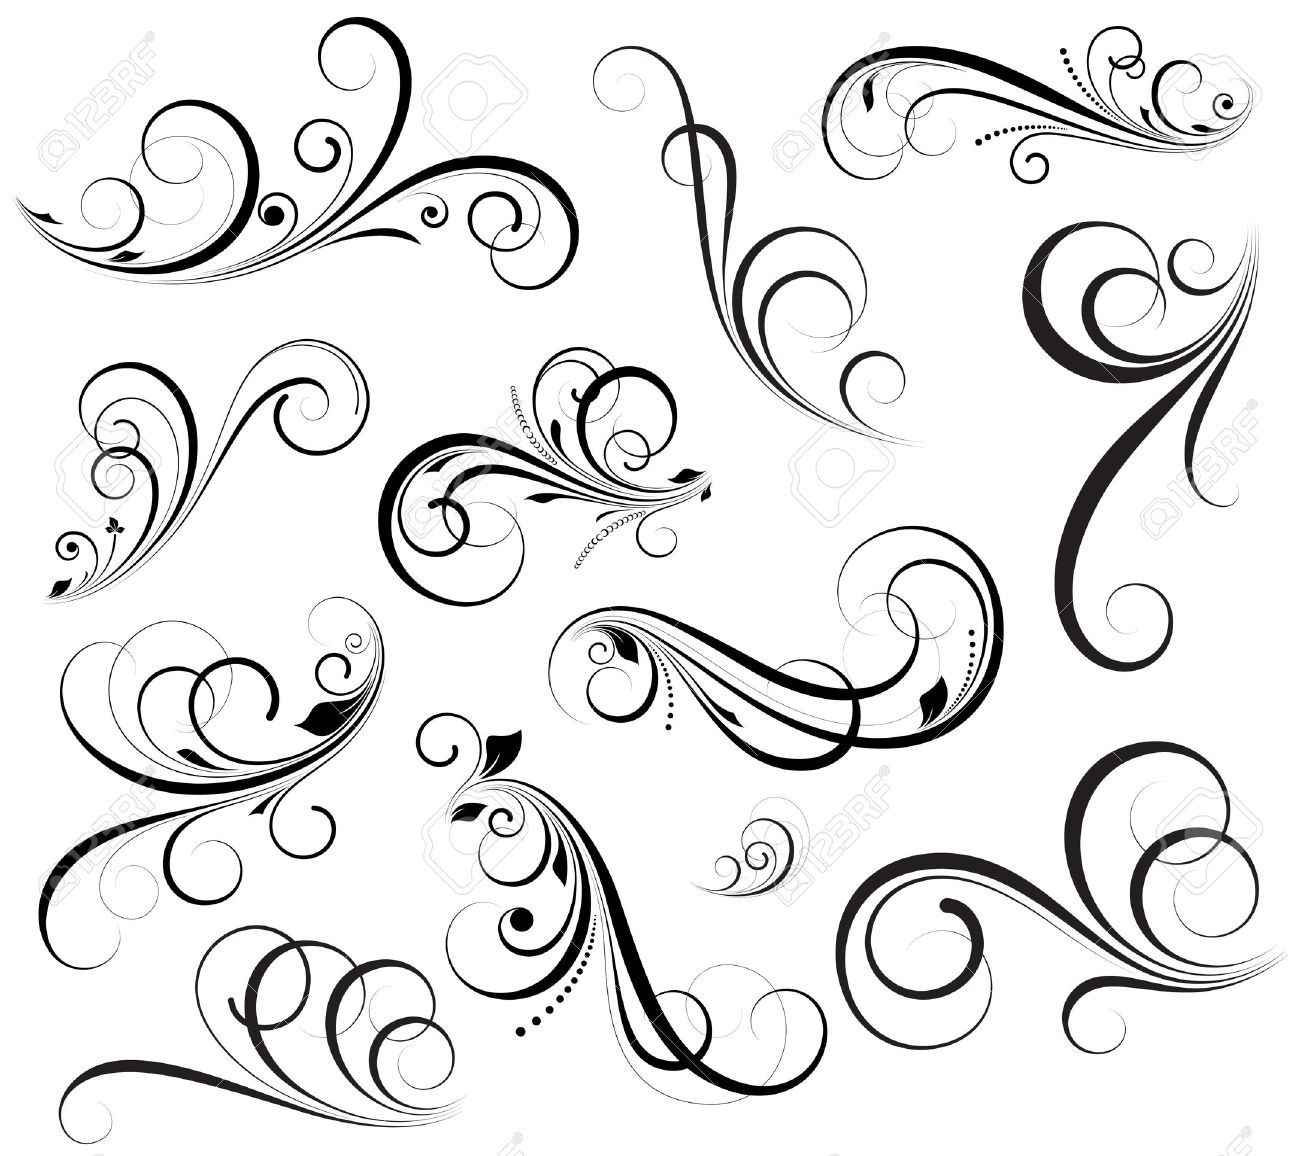 Swirls Vectors Stock Vector - 15244421